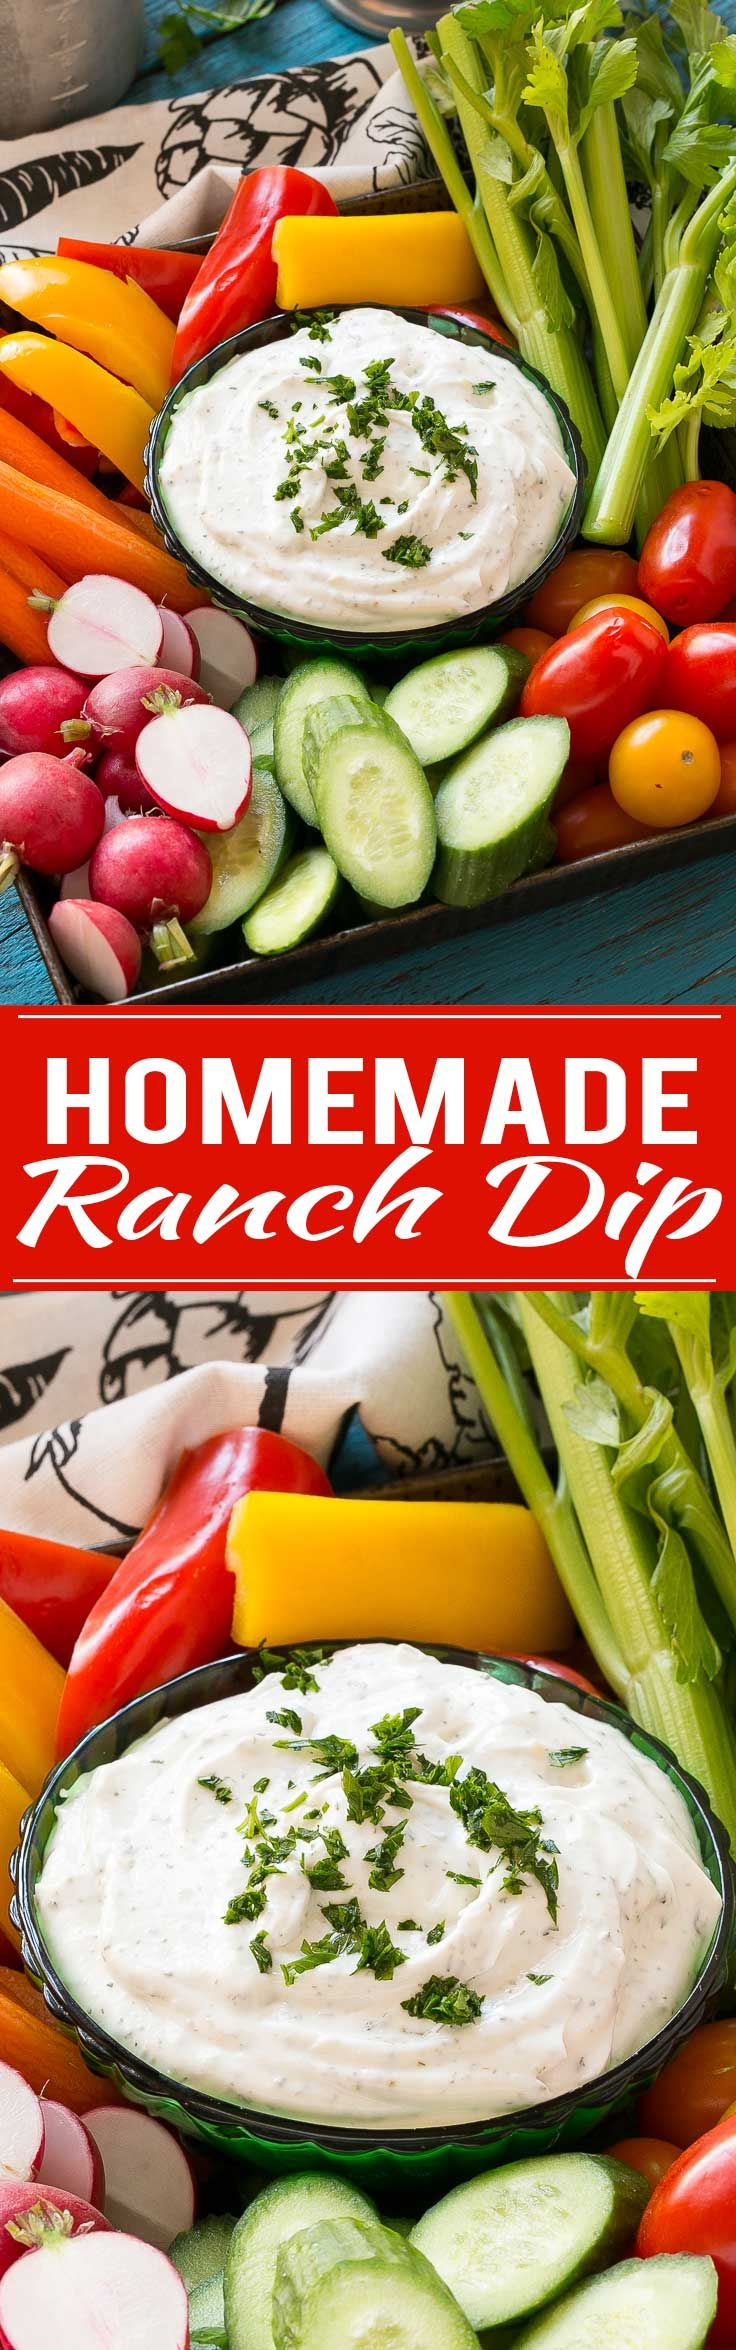 Make your own ranch dip and skip all the MSG and preservatives in the store bought kind.